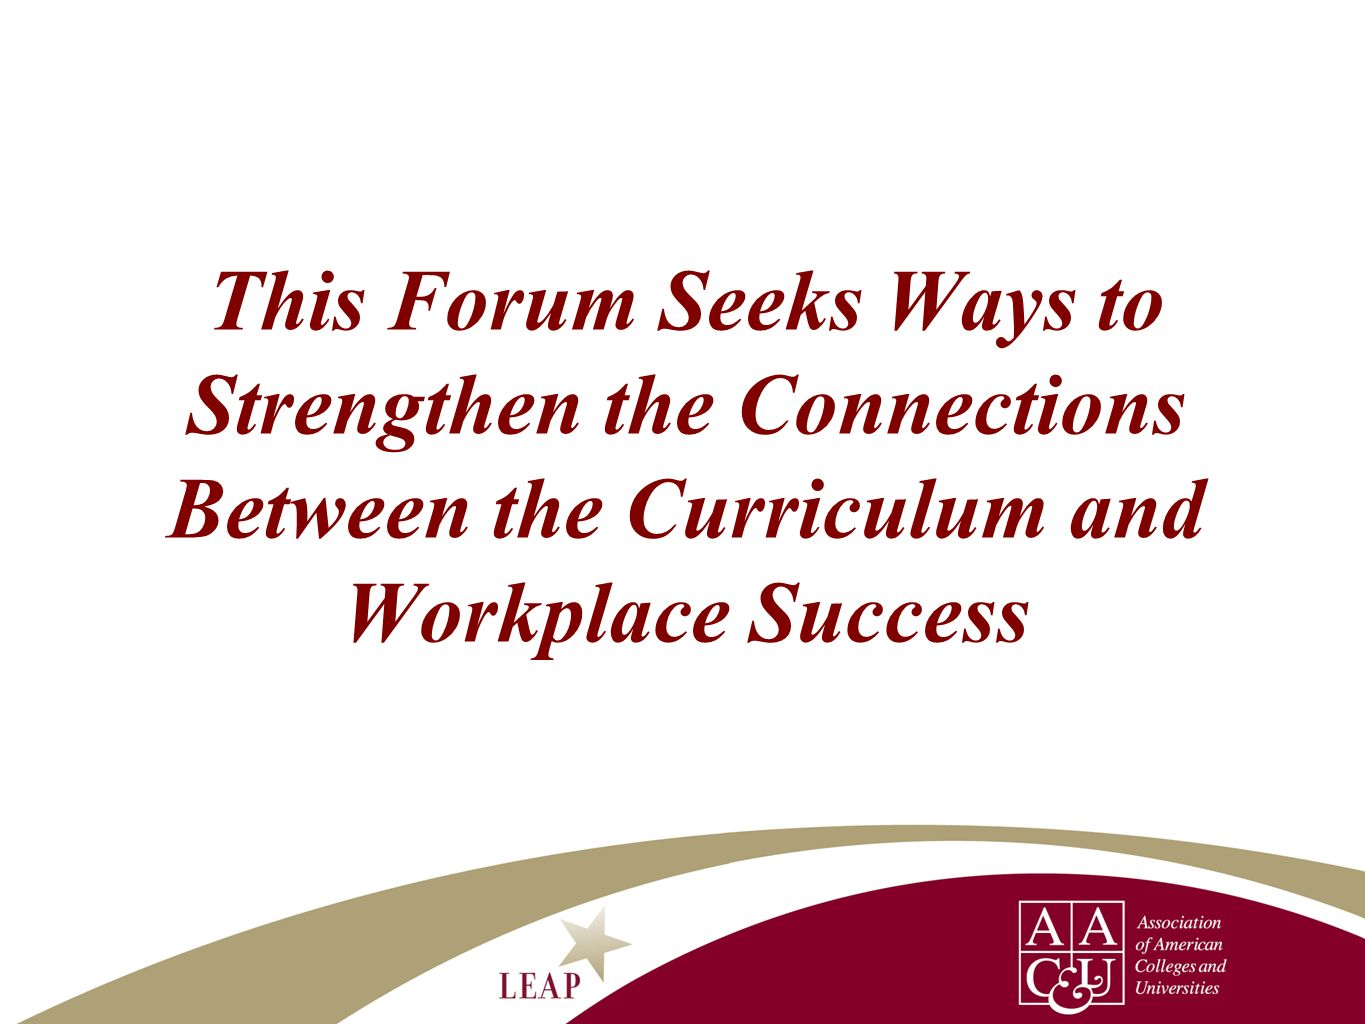 This Forum Seeks Ways to Strengthen the Connections Between the Curriculum and Workplace Success